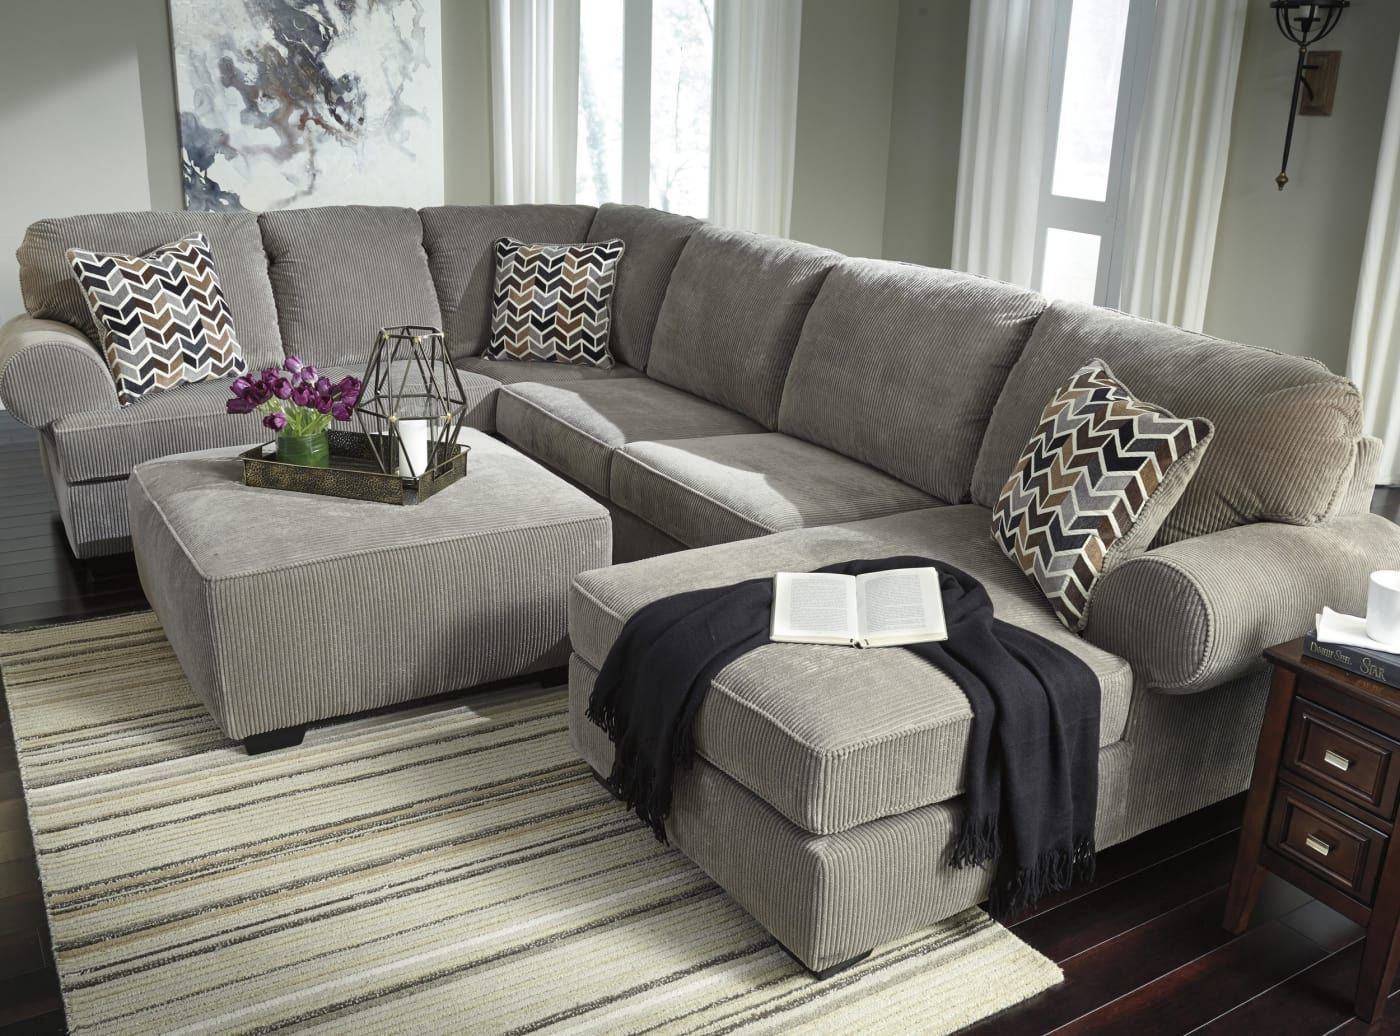 Signature Design by Ashley Jinllingsly Gray 4 Piece Living ... on Outdoor Living Room Set id=56411